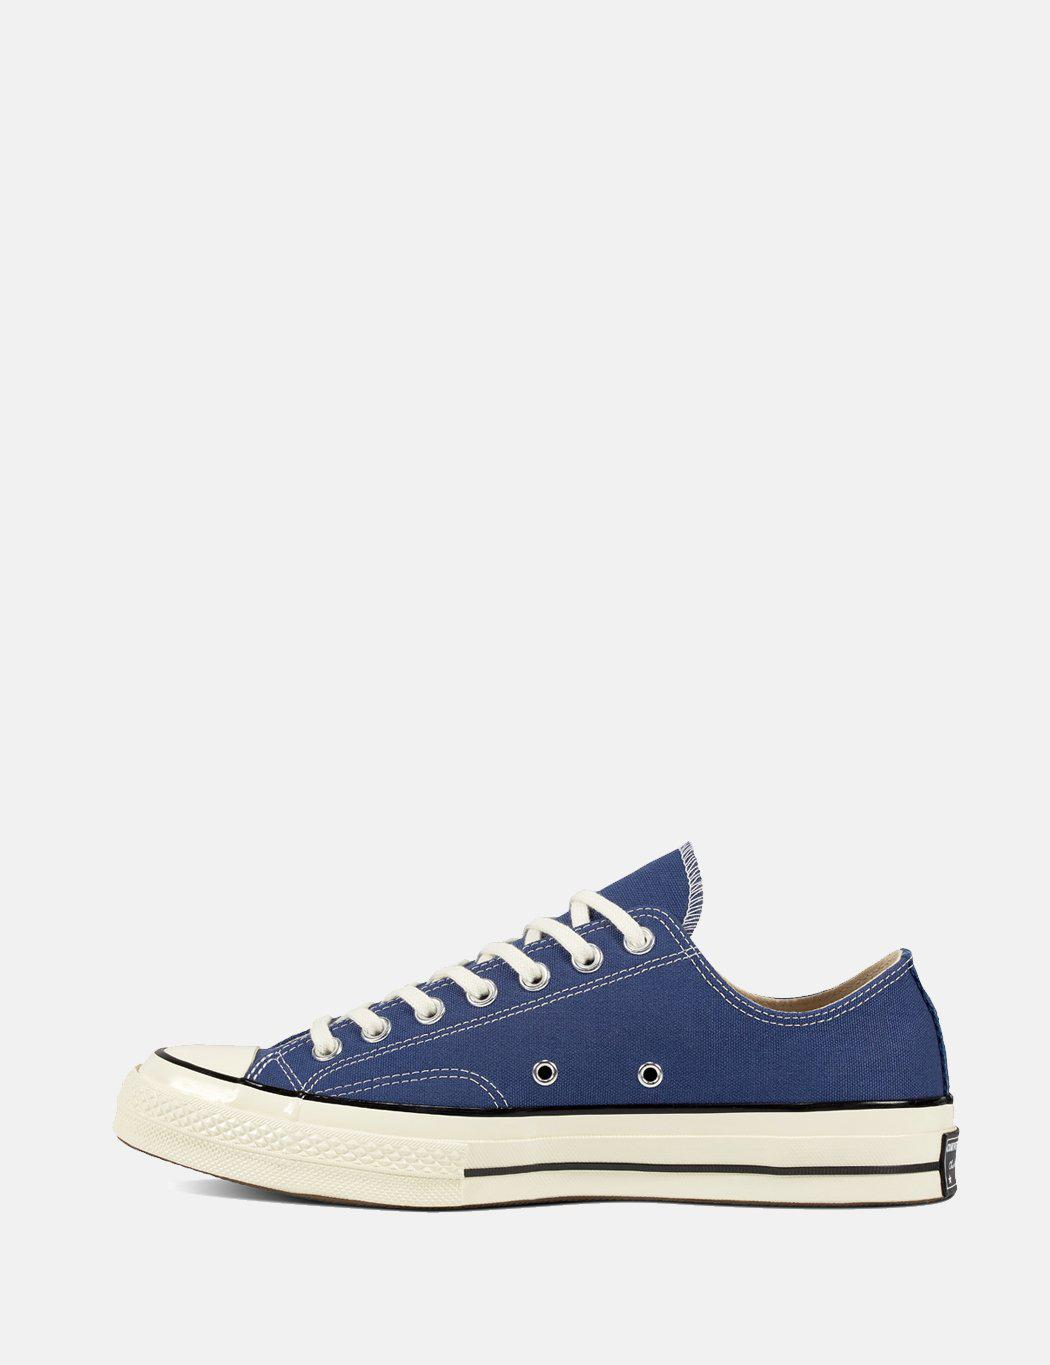 031ce554ac55 Converse 70 s Chuck Low 162064c (canvas) in Blue for Men - Lyst